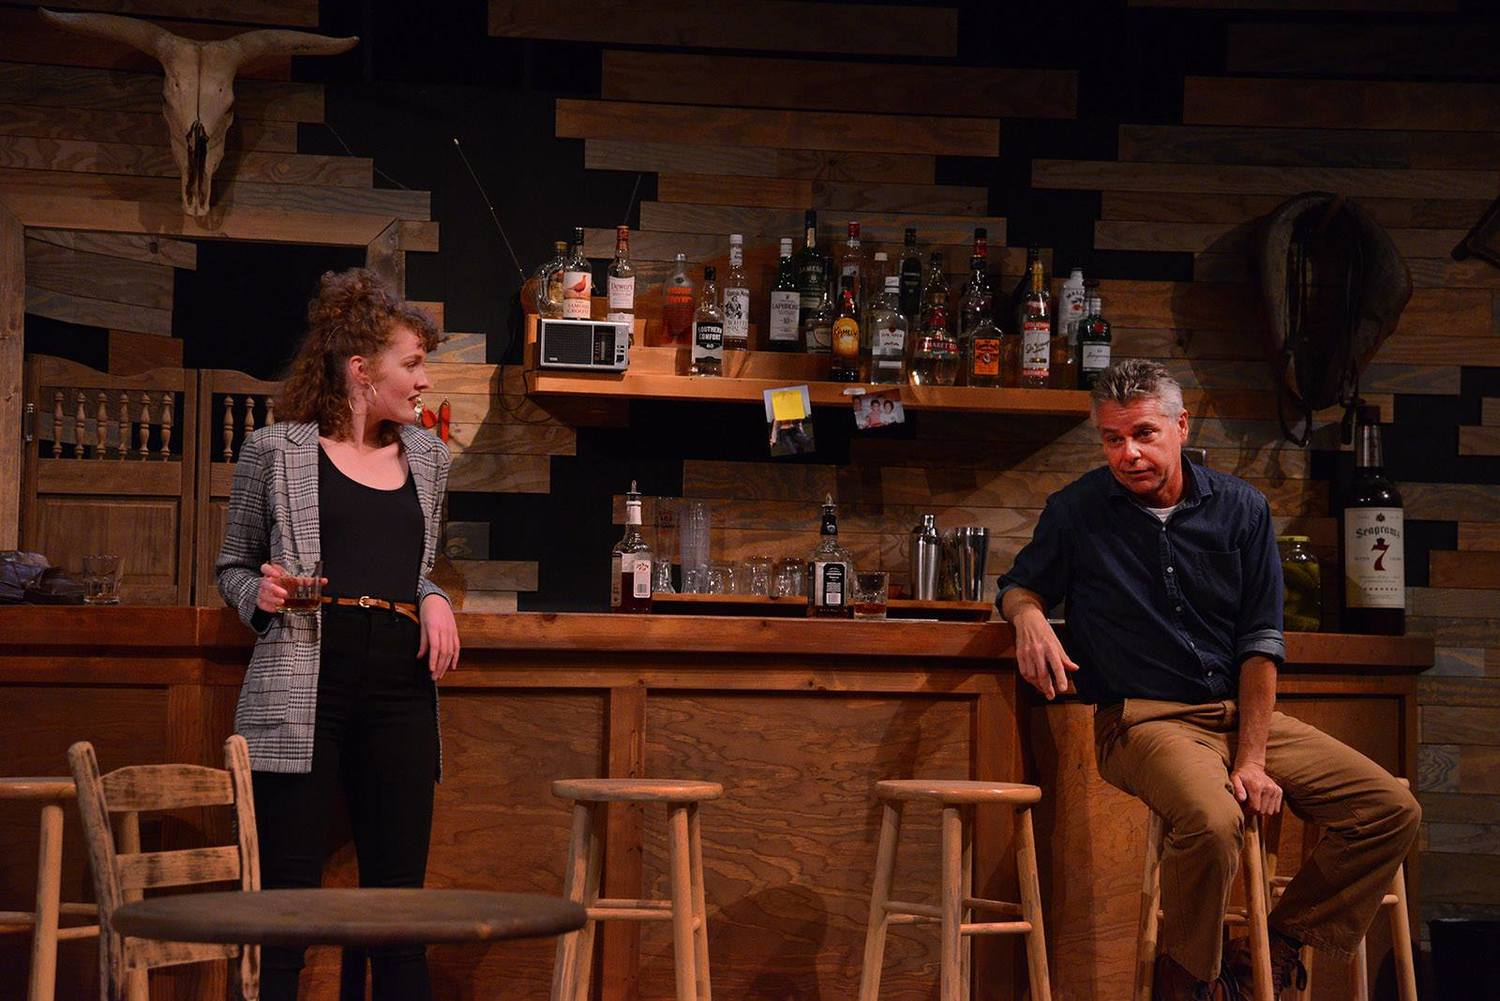 BWW Review: Theatre in the Park's IT IS DONE Serves Up Spooky Tale Along With Fine Performances